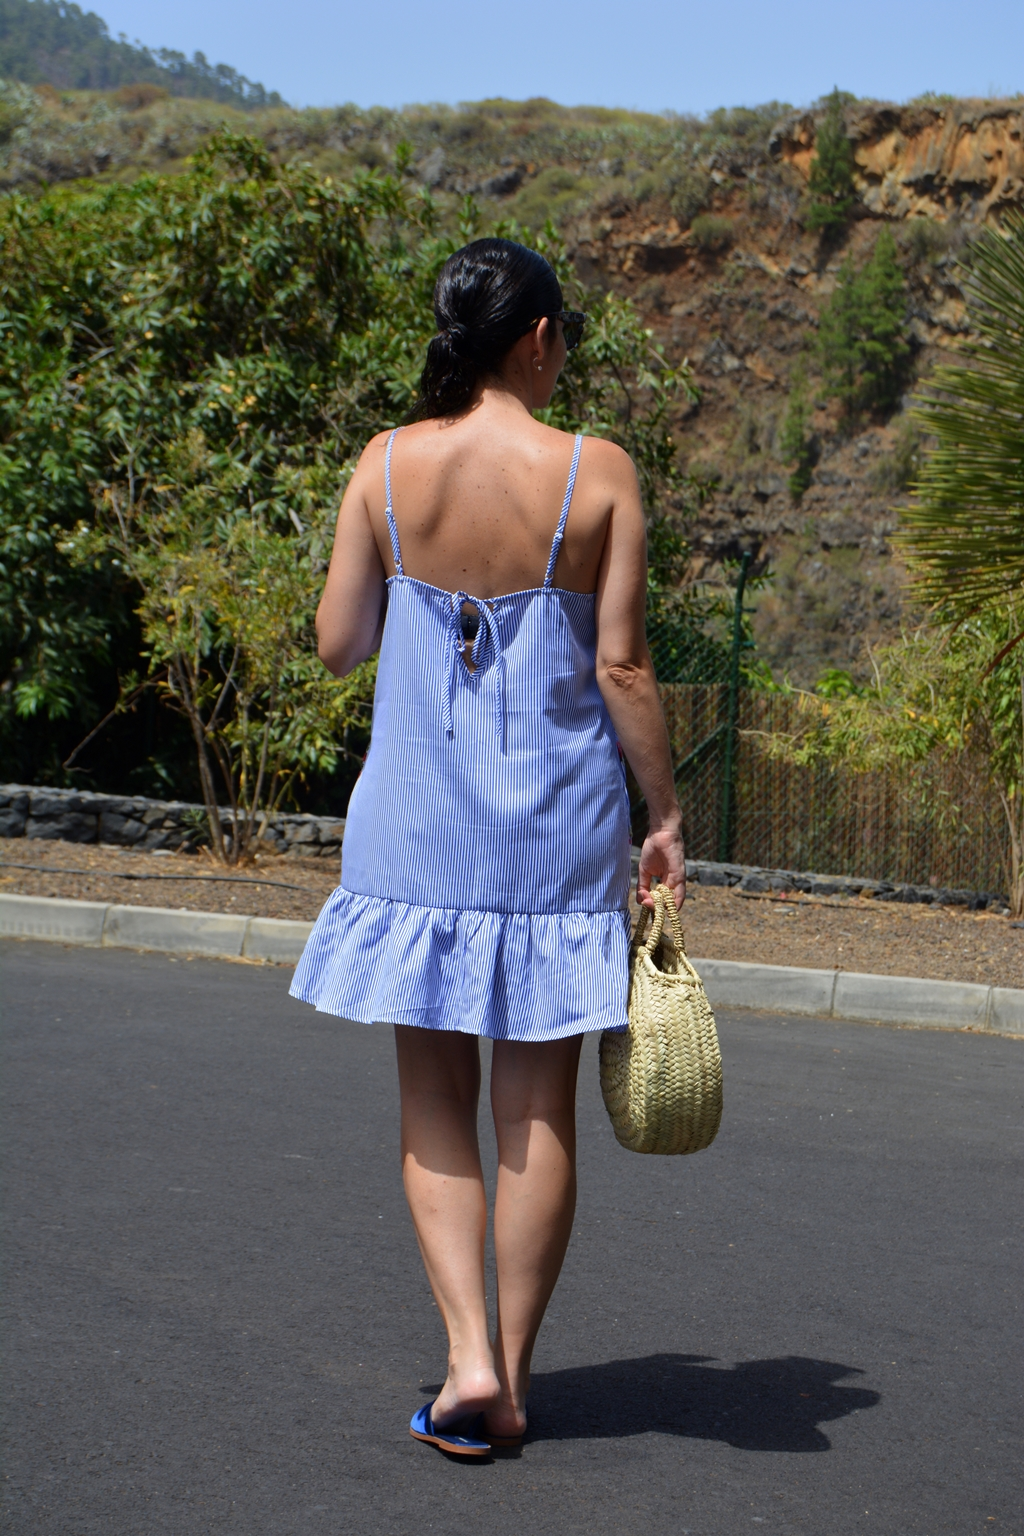 mix-flowers-and-stripes-outfit-back-romwe